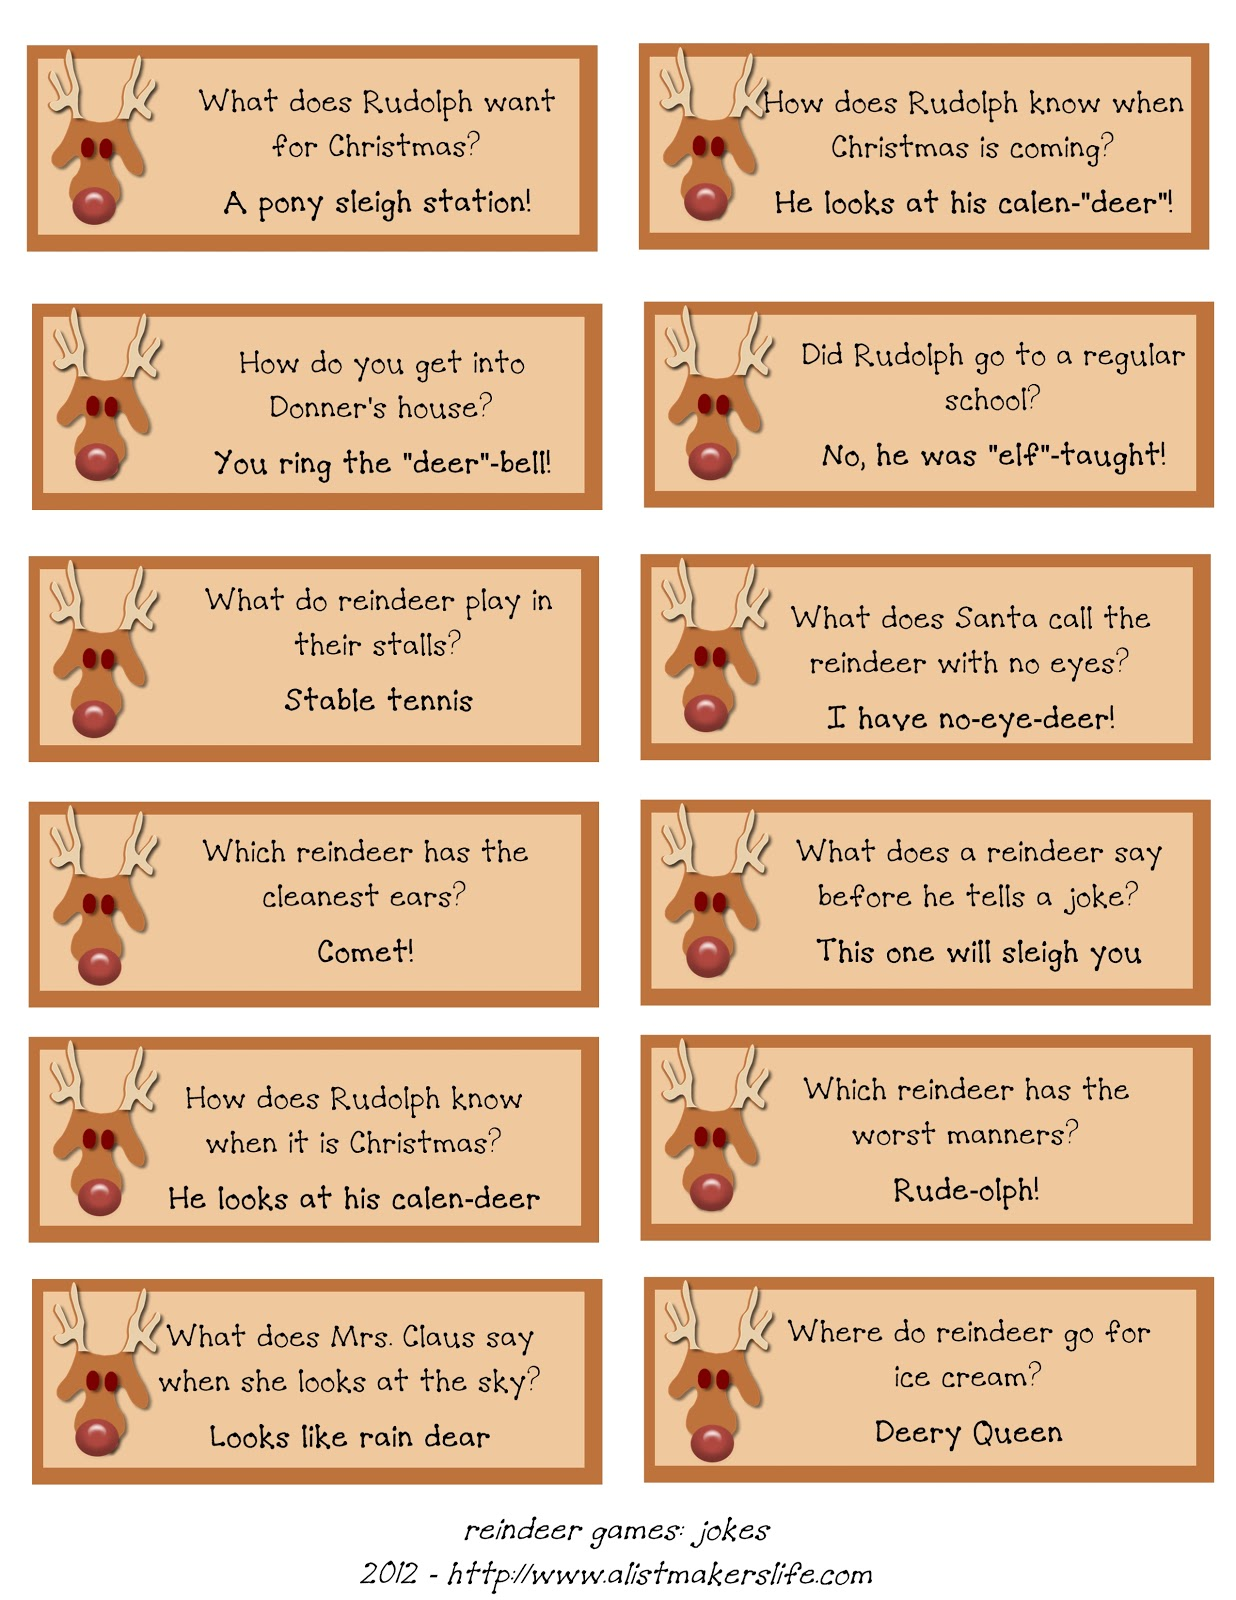 Uncategorized Christmas Riddles And Jokes reindeer riddles free printable a list makers life funnies using jokes i found all over the web no sense anyone else having to reinvent this document have uploaded it as download fo